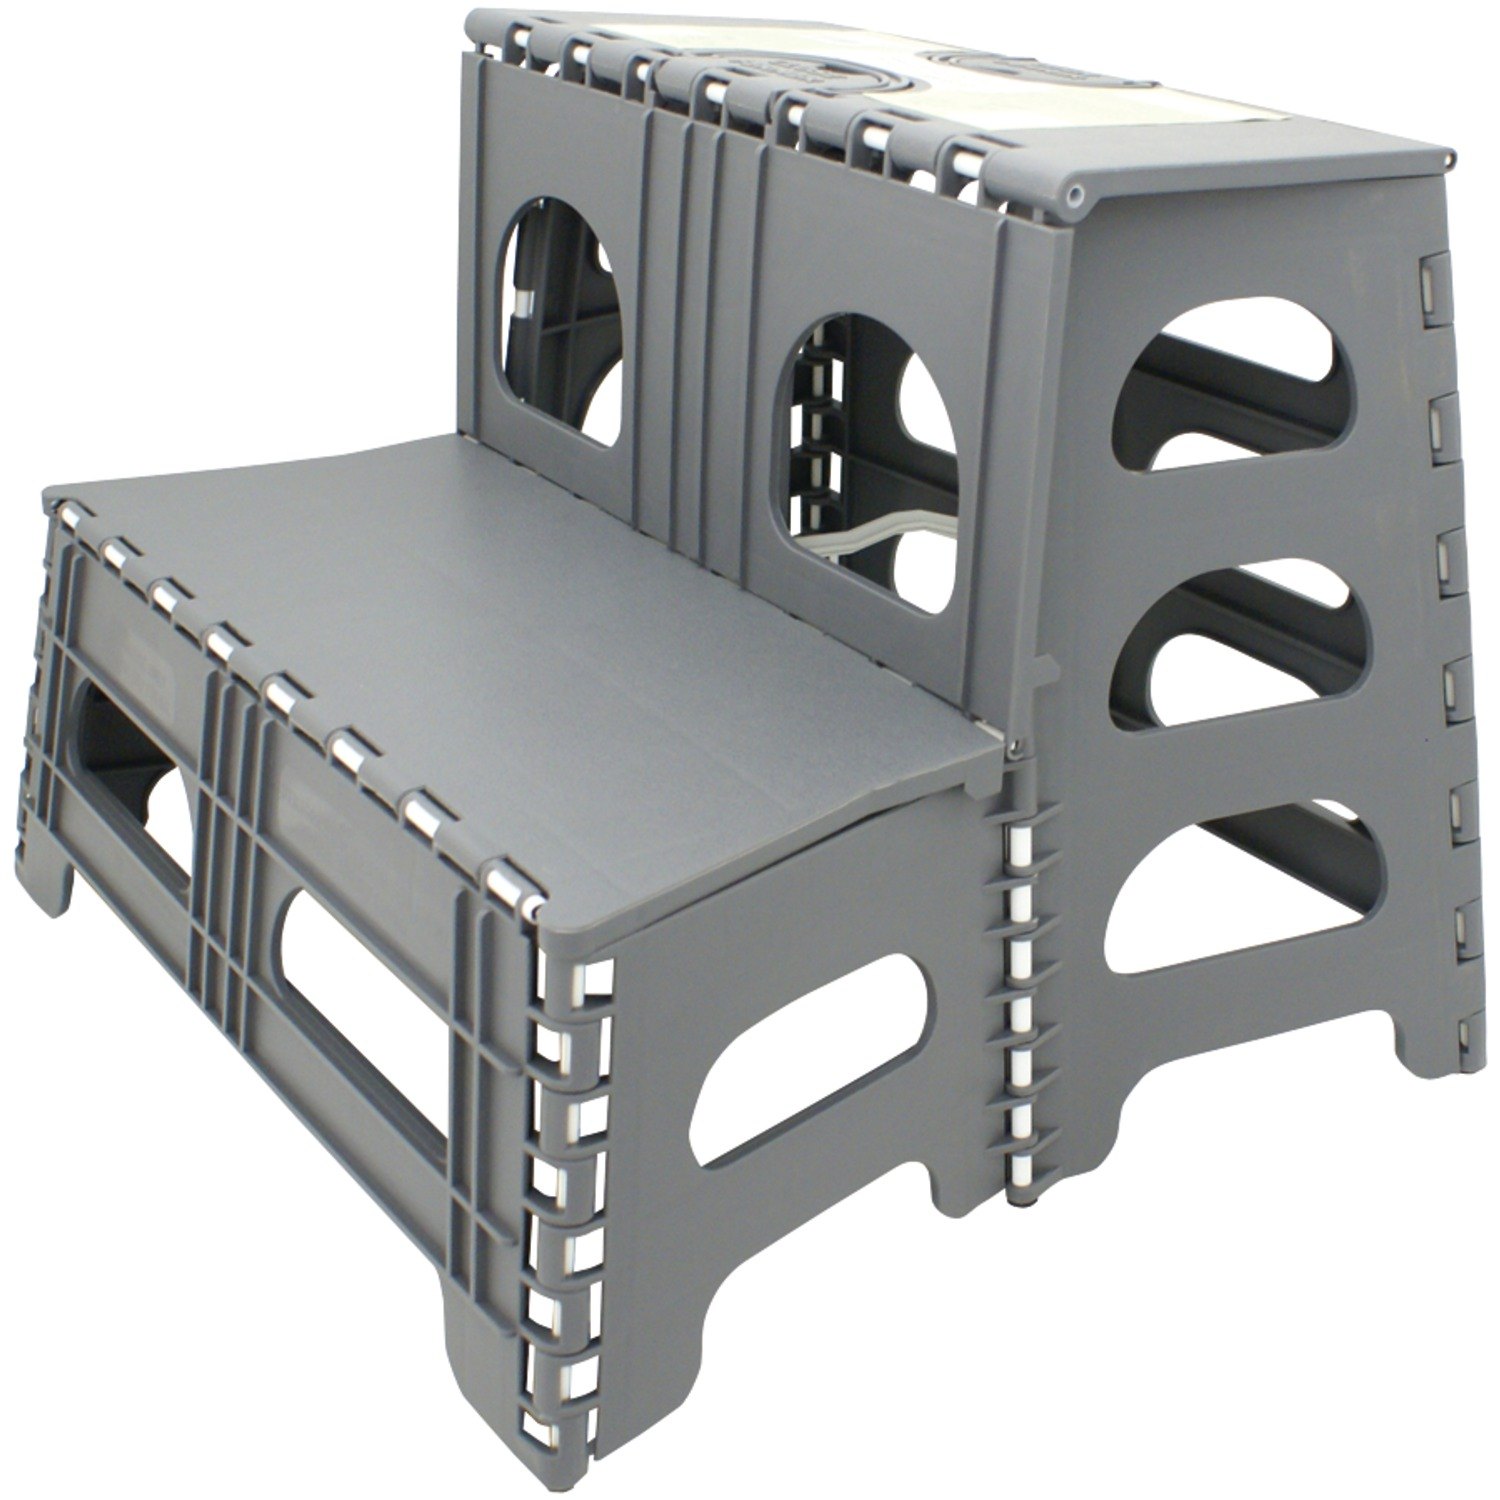 RKNSS2 SS2 Step Stool (Two Step) by Range Kleen